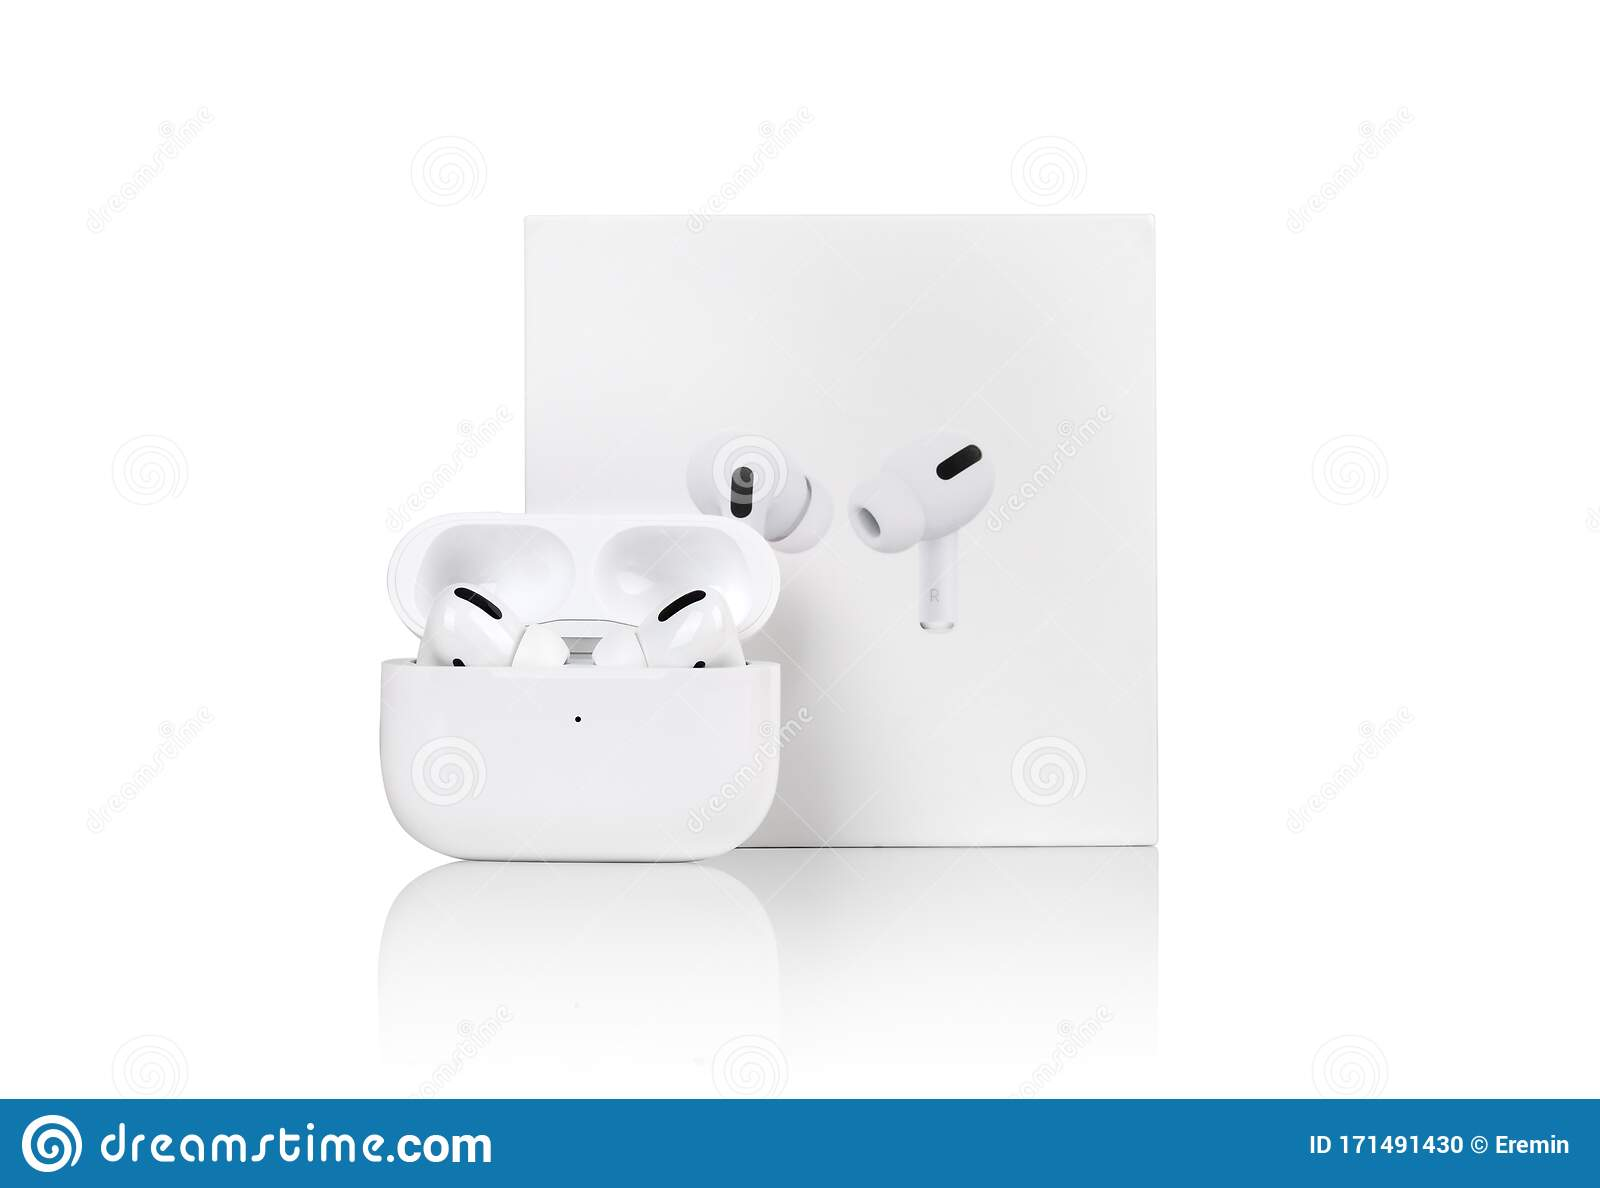 Apple AirPods Pro On A White Background. Wireless Headphones In A